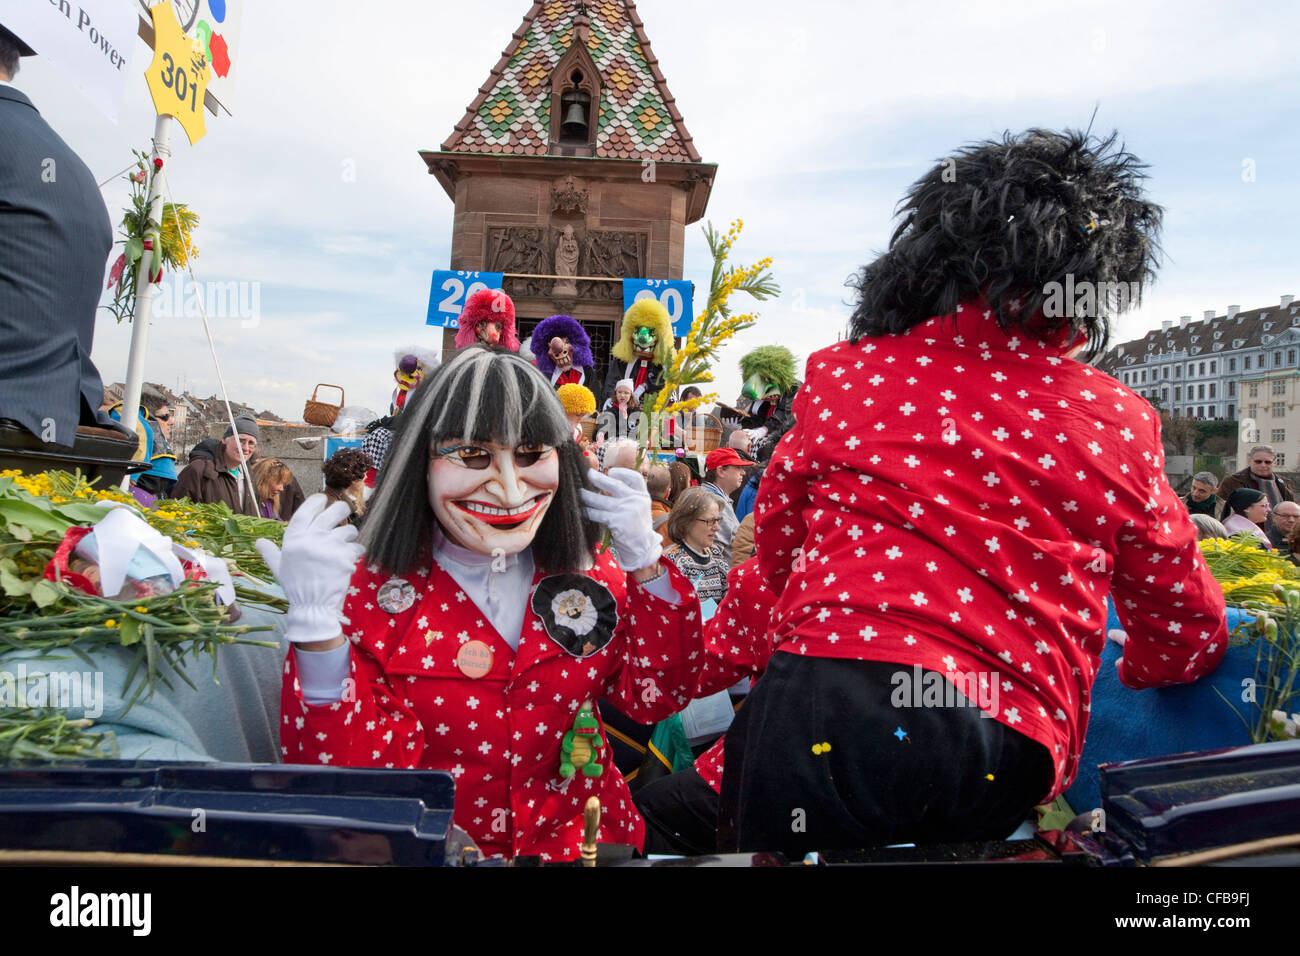 Carnival, carnival, town, city, event, canton, Basel, Switzerland, Europe, town, city, Basel carnival, masks, Calmy Stock Photo